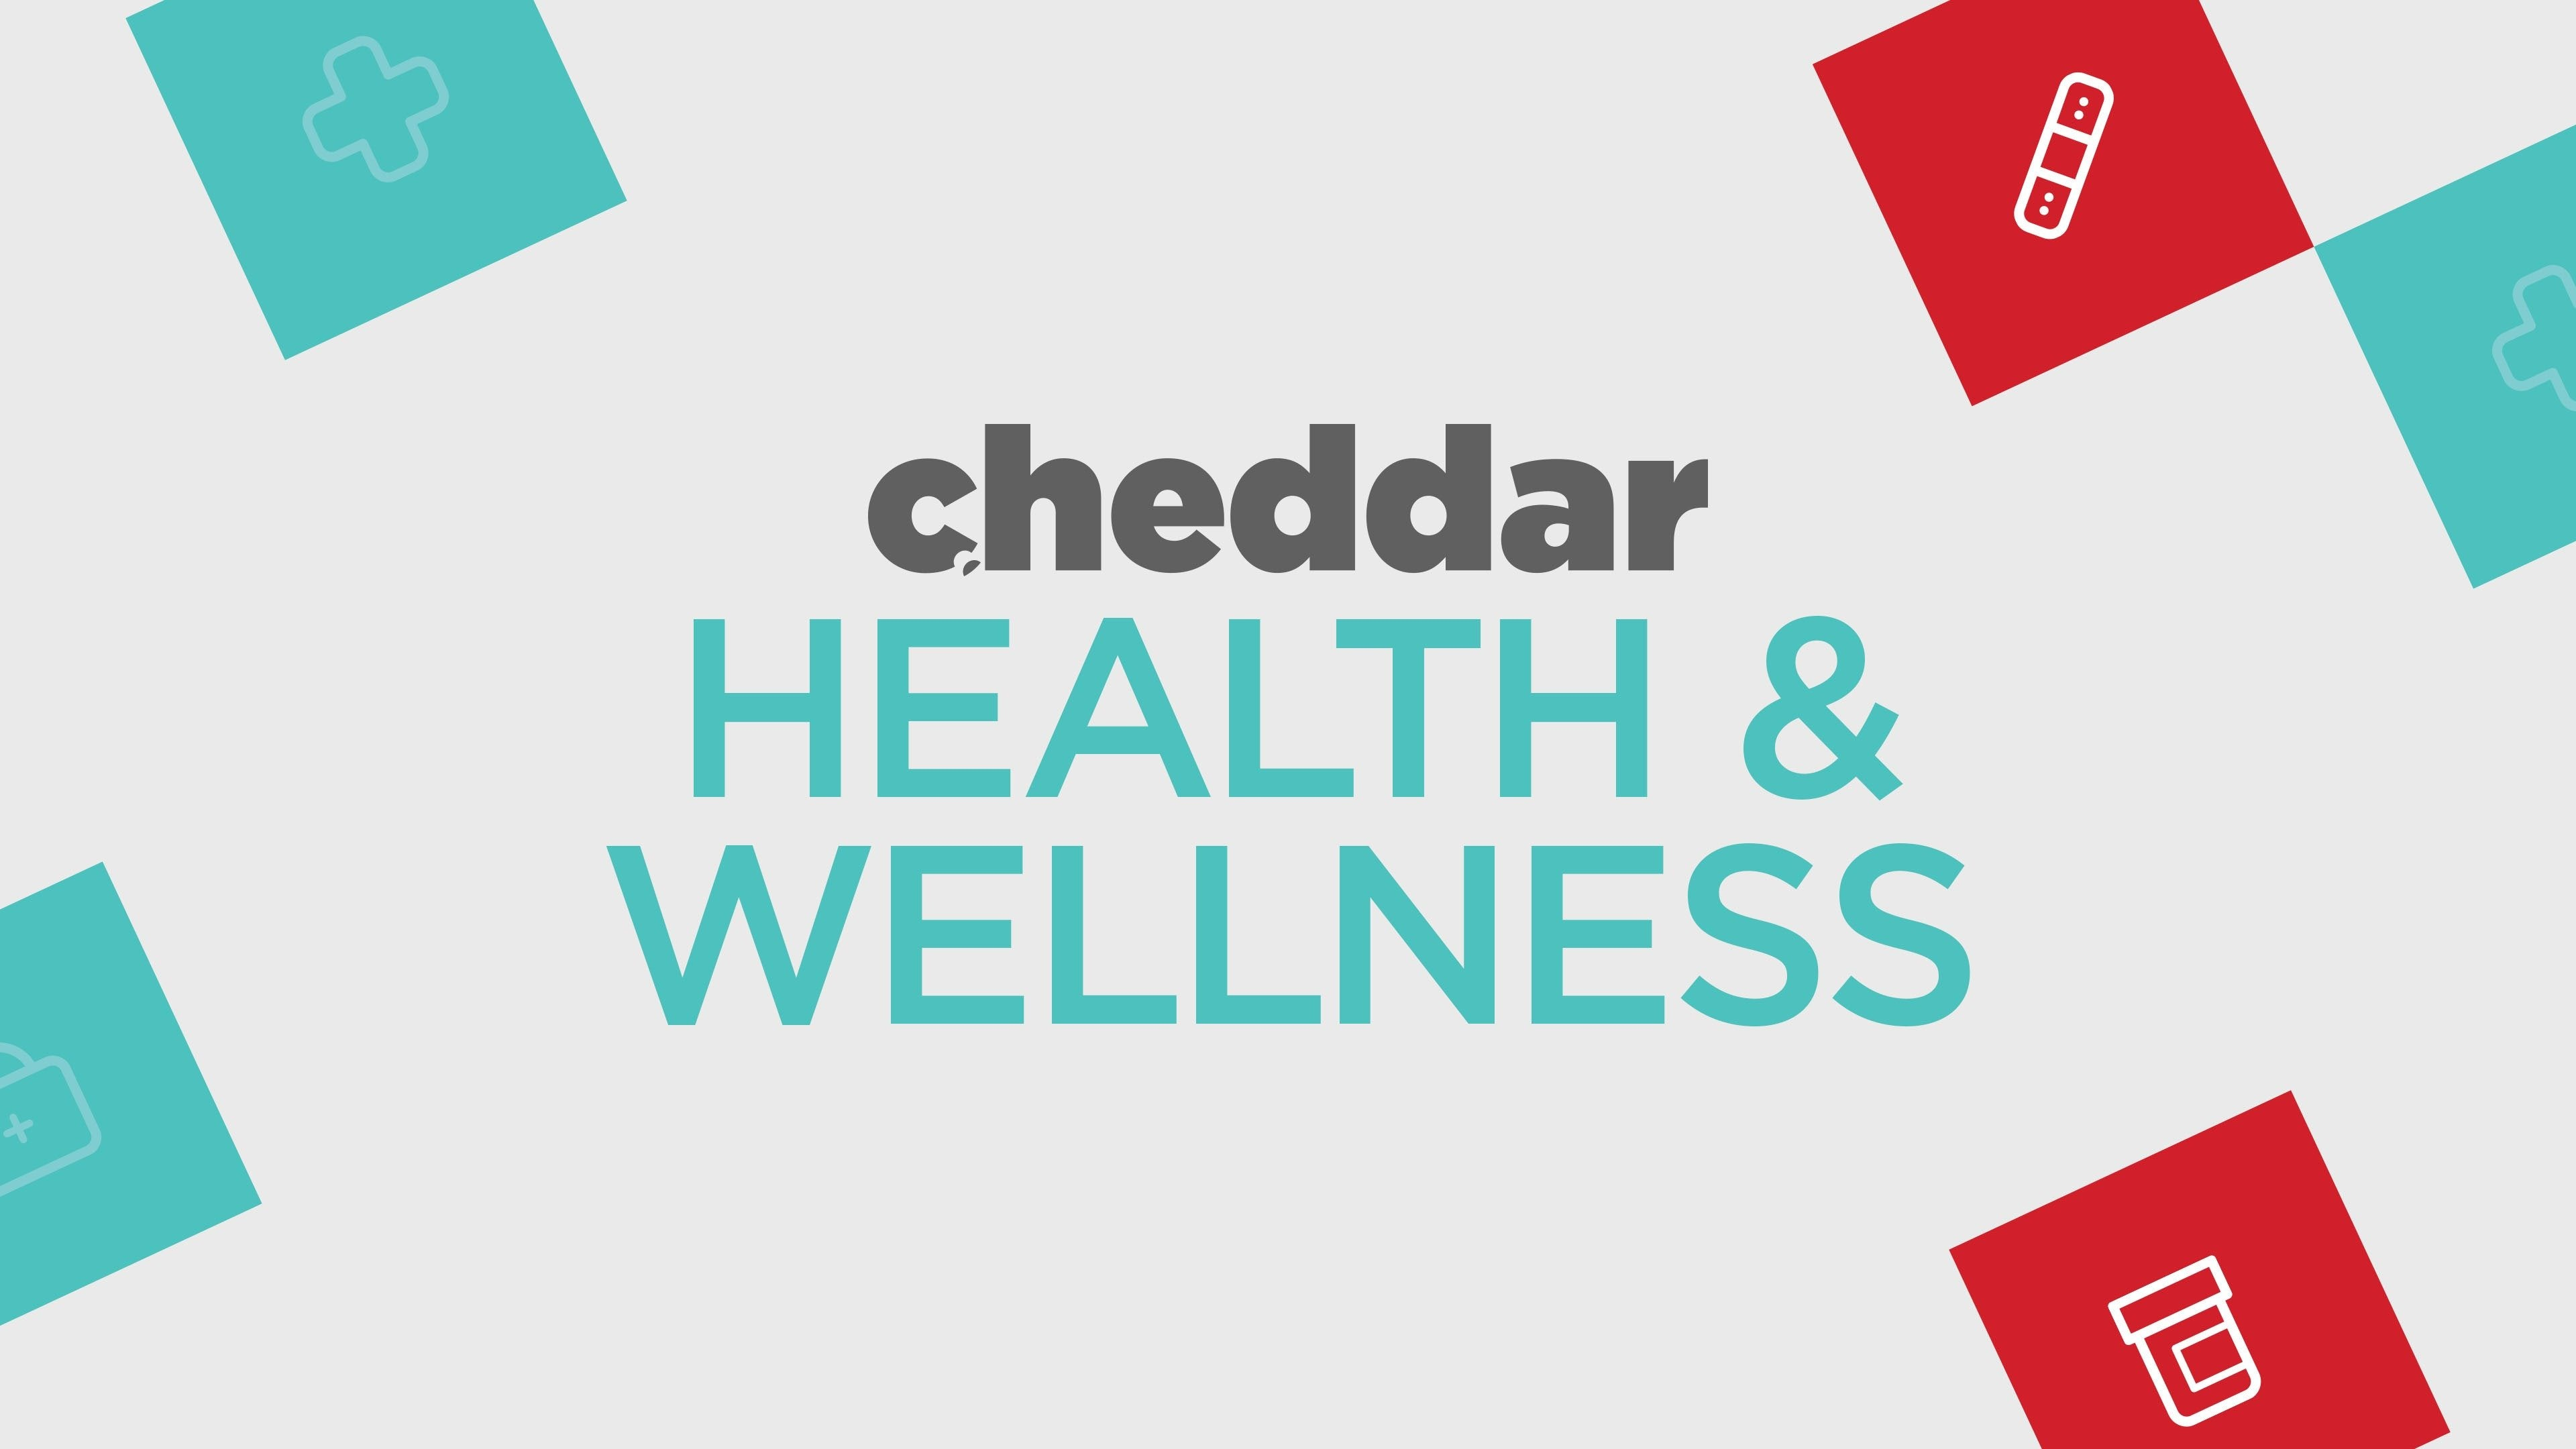 Cheddar Health & Wellness